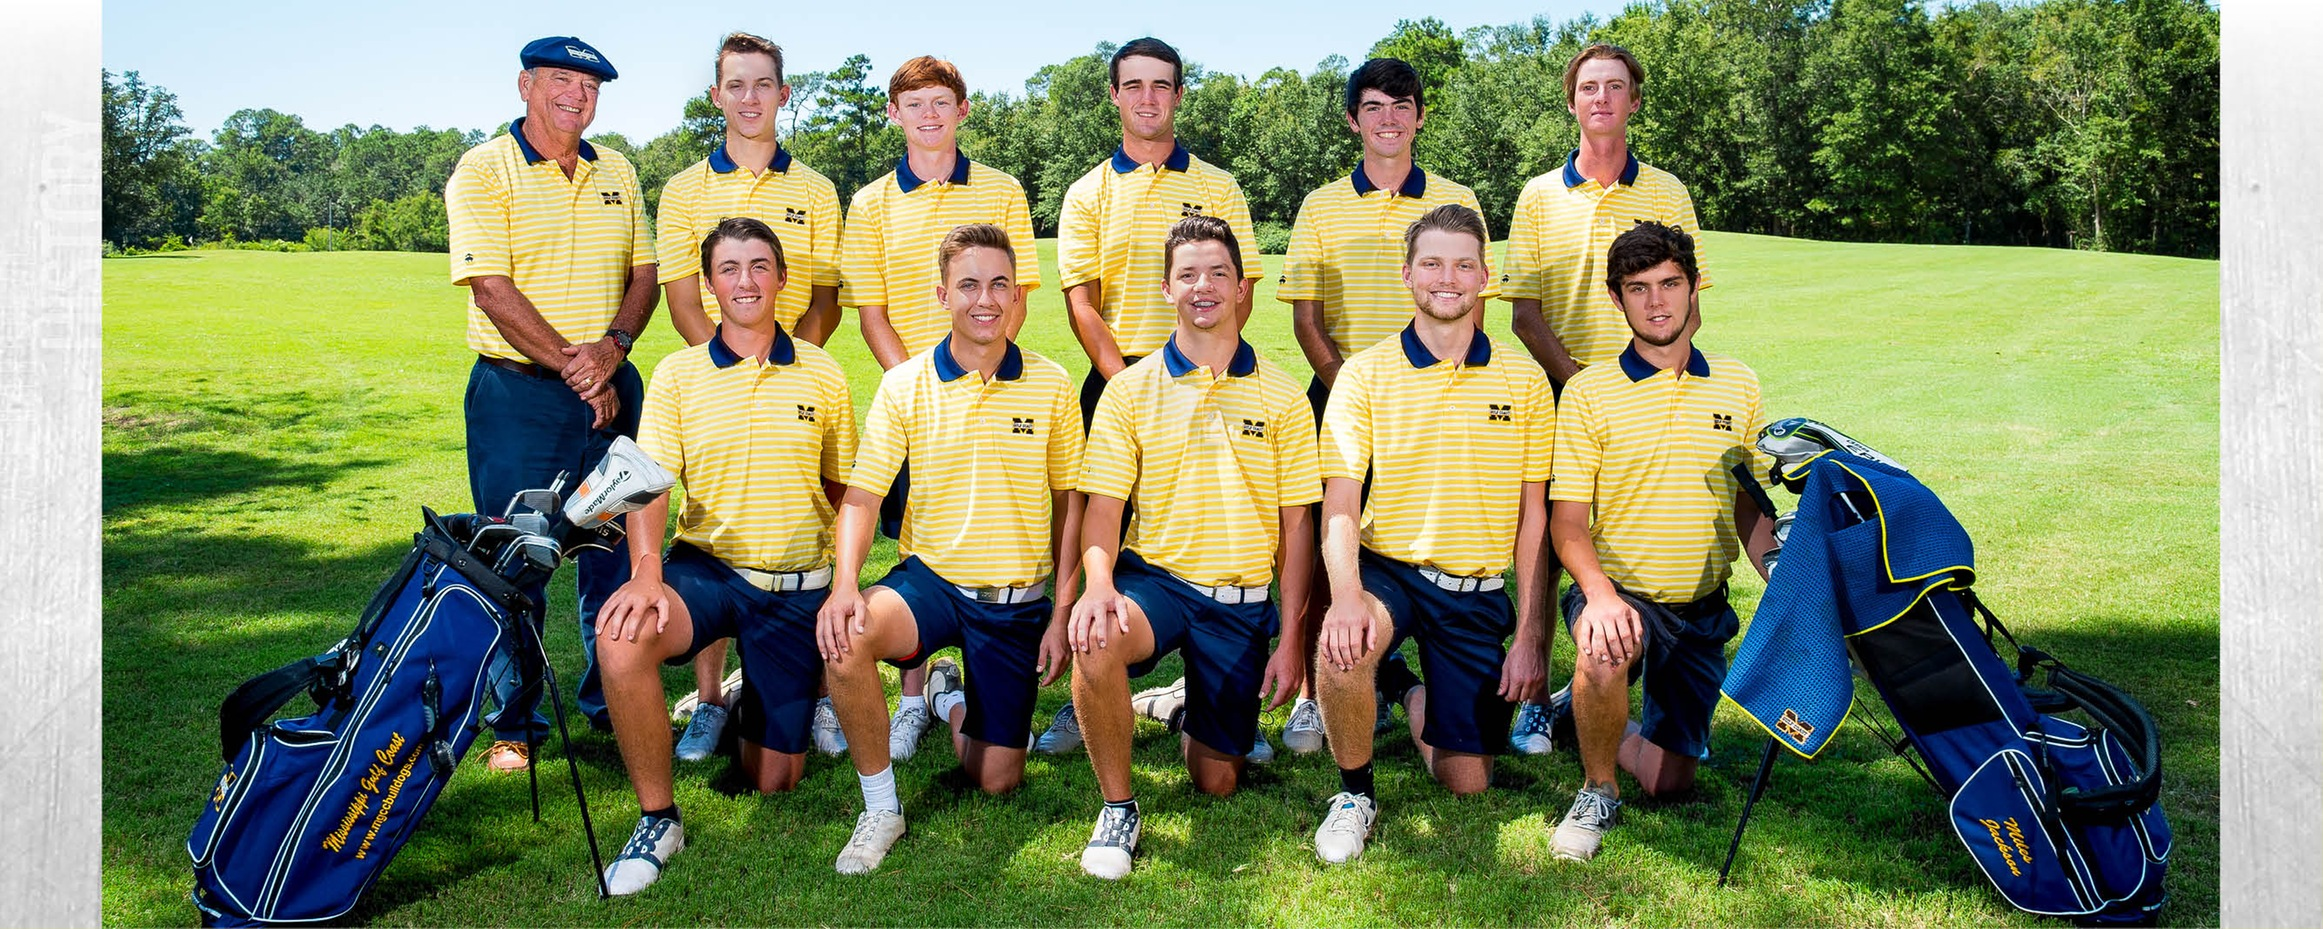 No. 1 MGCCC in third after opening round